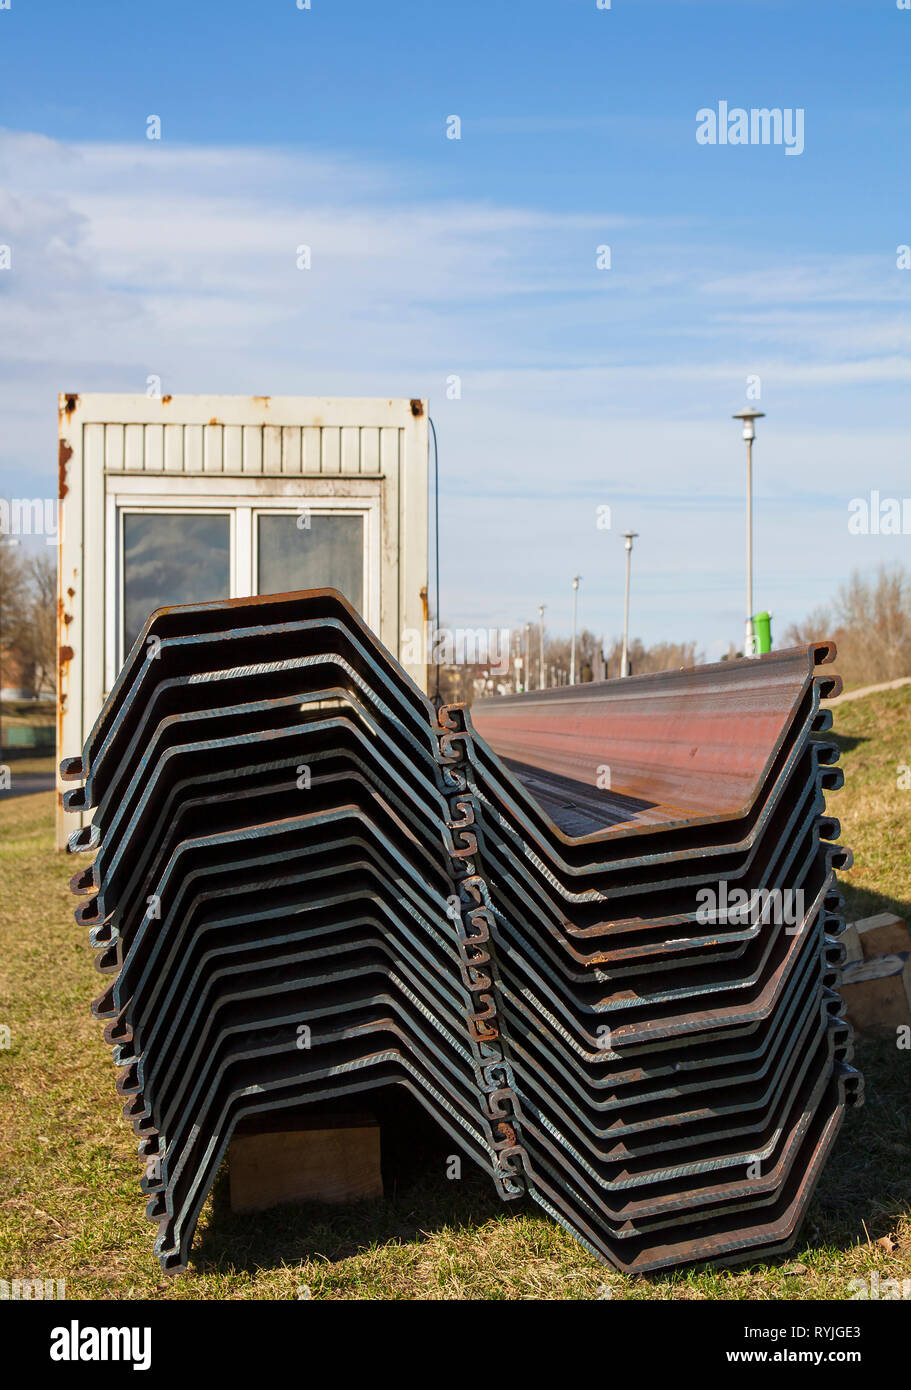 Steel construction pillars with specific shapes to stabilizes the flood protection dam Stock Photo